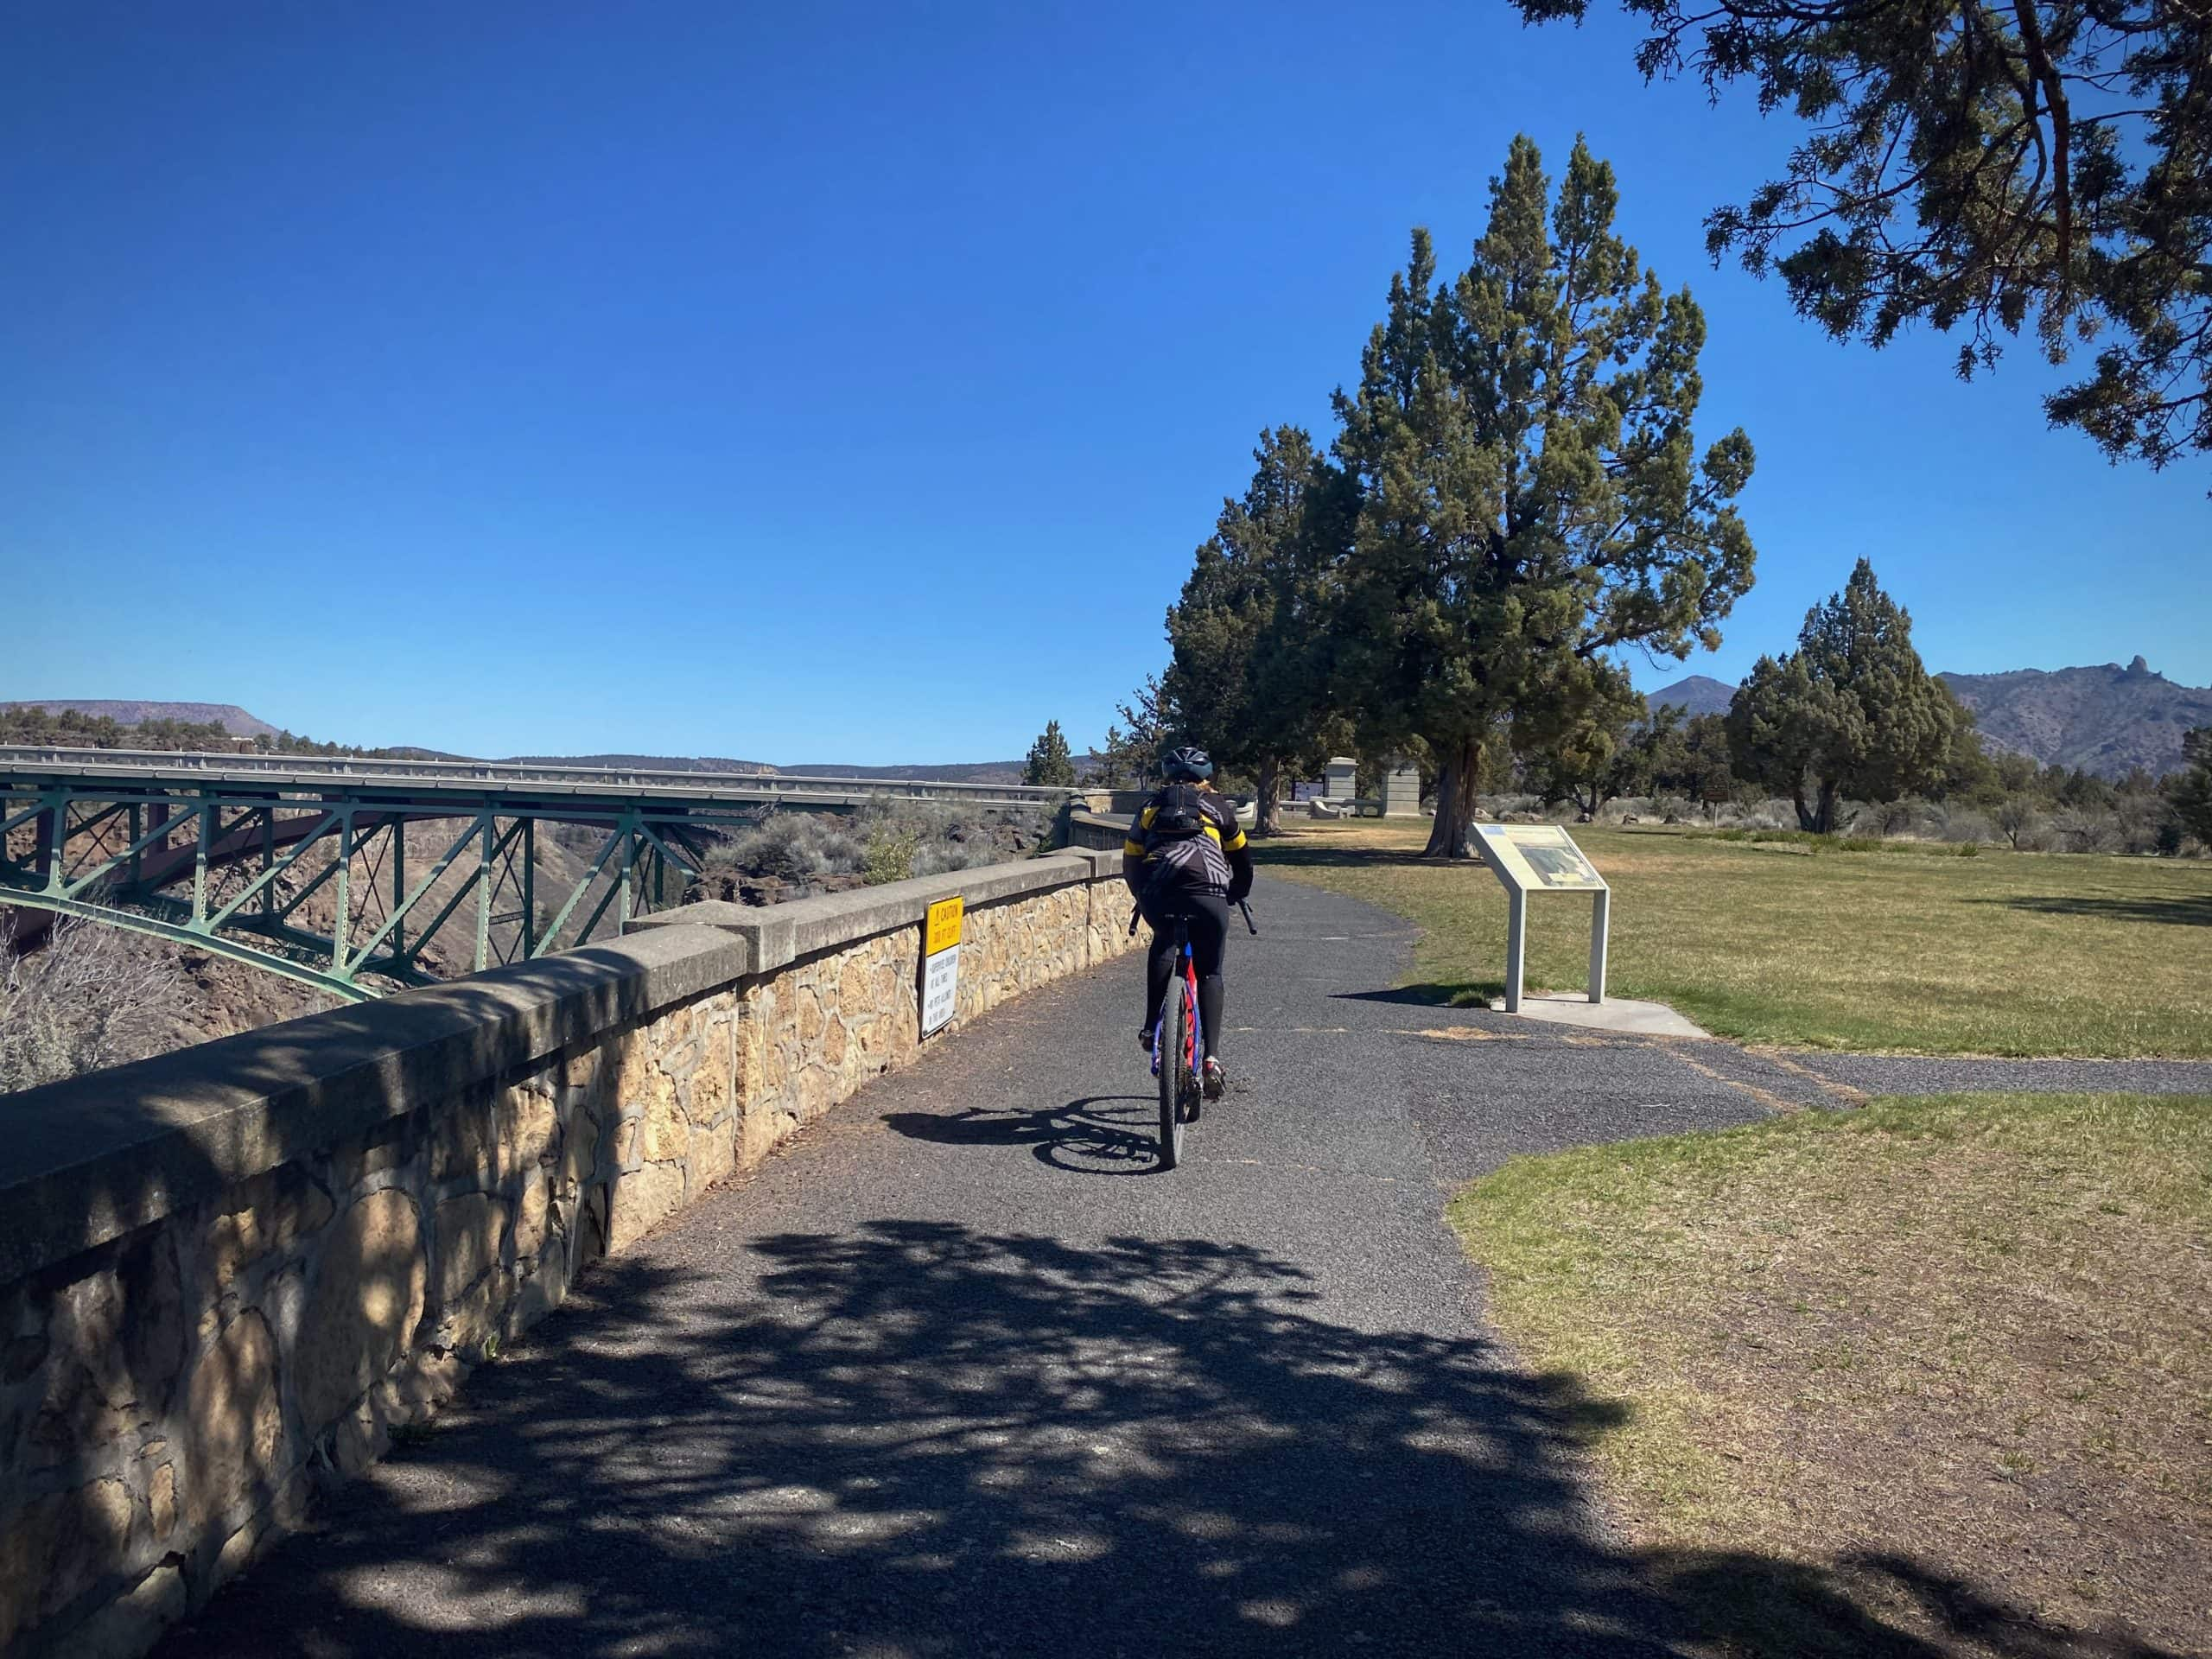 Cyclist on the paved path at the Crooked River gorge at the Peter Skene Ogden State Scenic viewpoint.